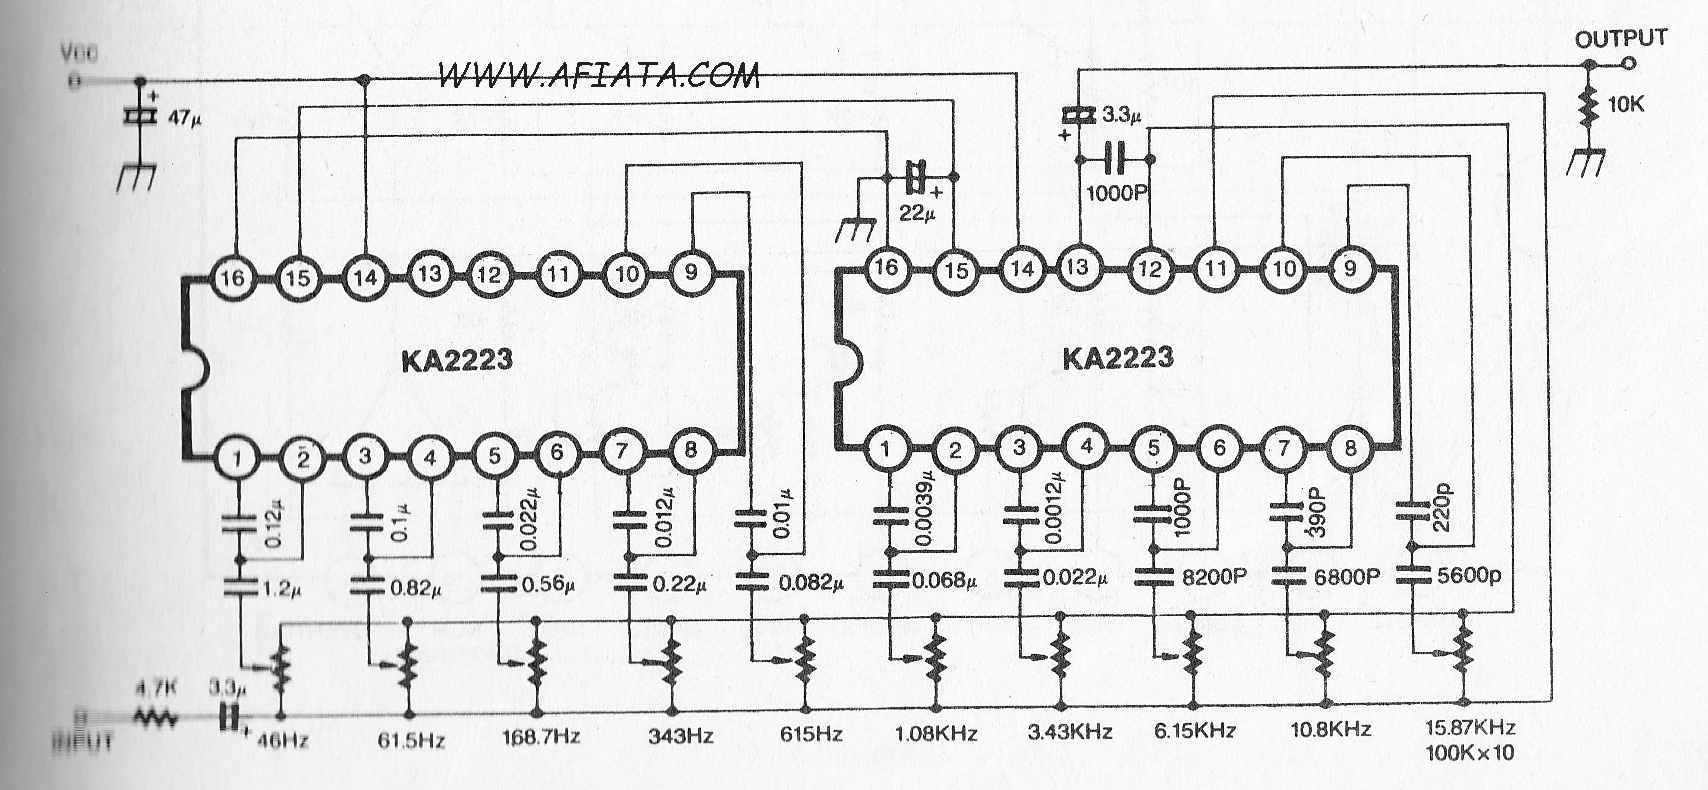 5 band graphic equalizer diagram